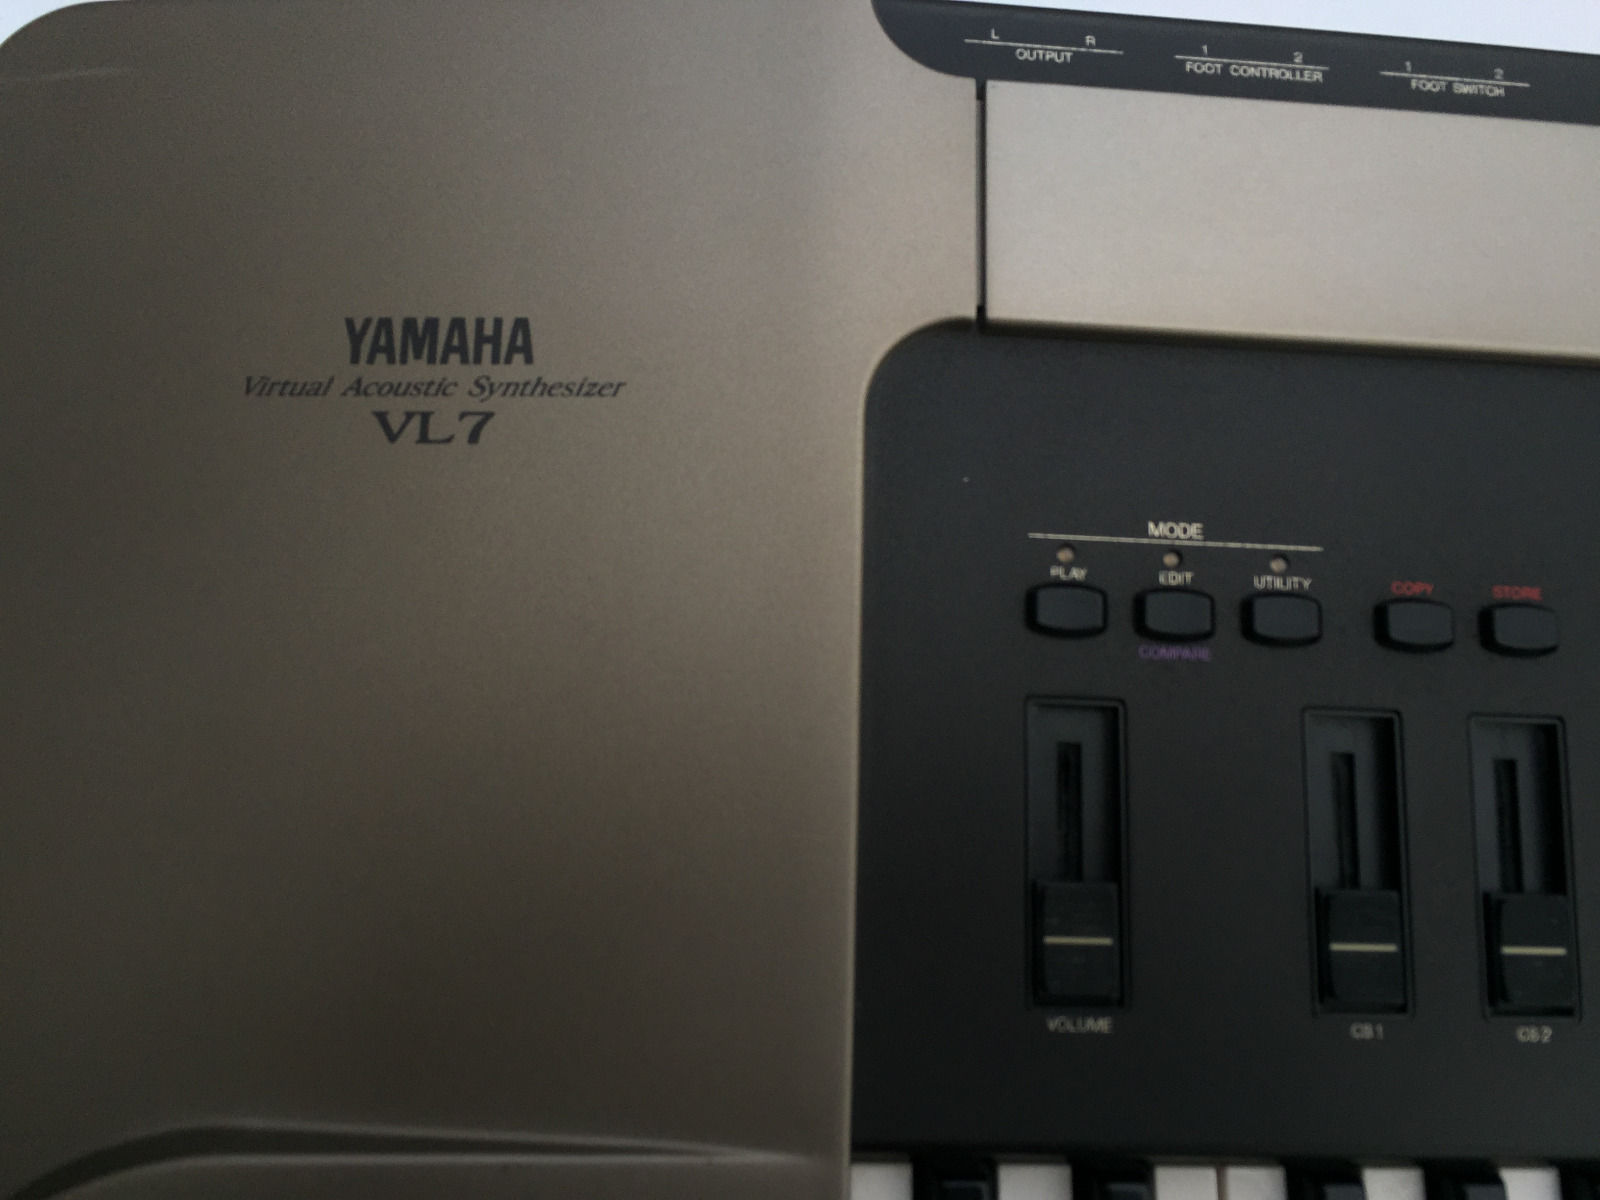 MATRIXSYNTH: Yamaha VL7 VIrtual Acoustic Synthesizer with